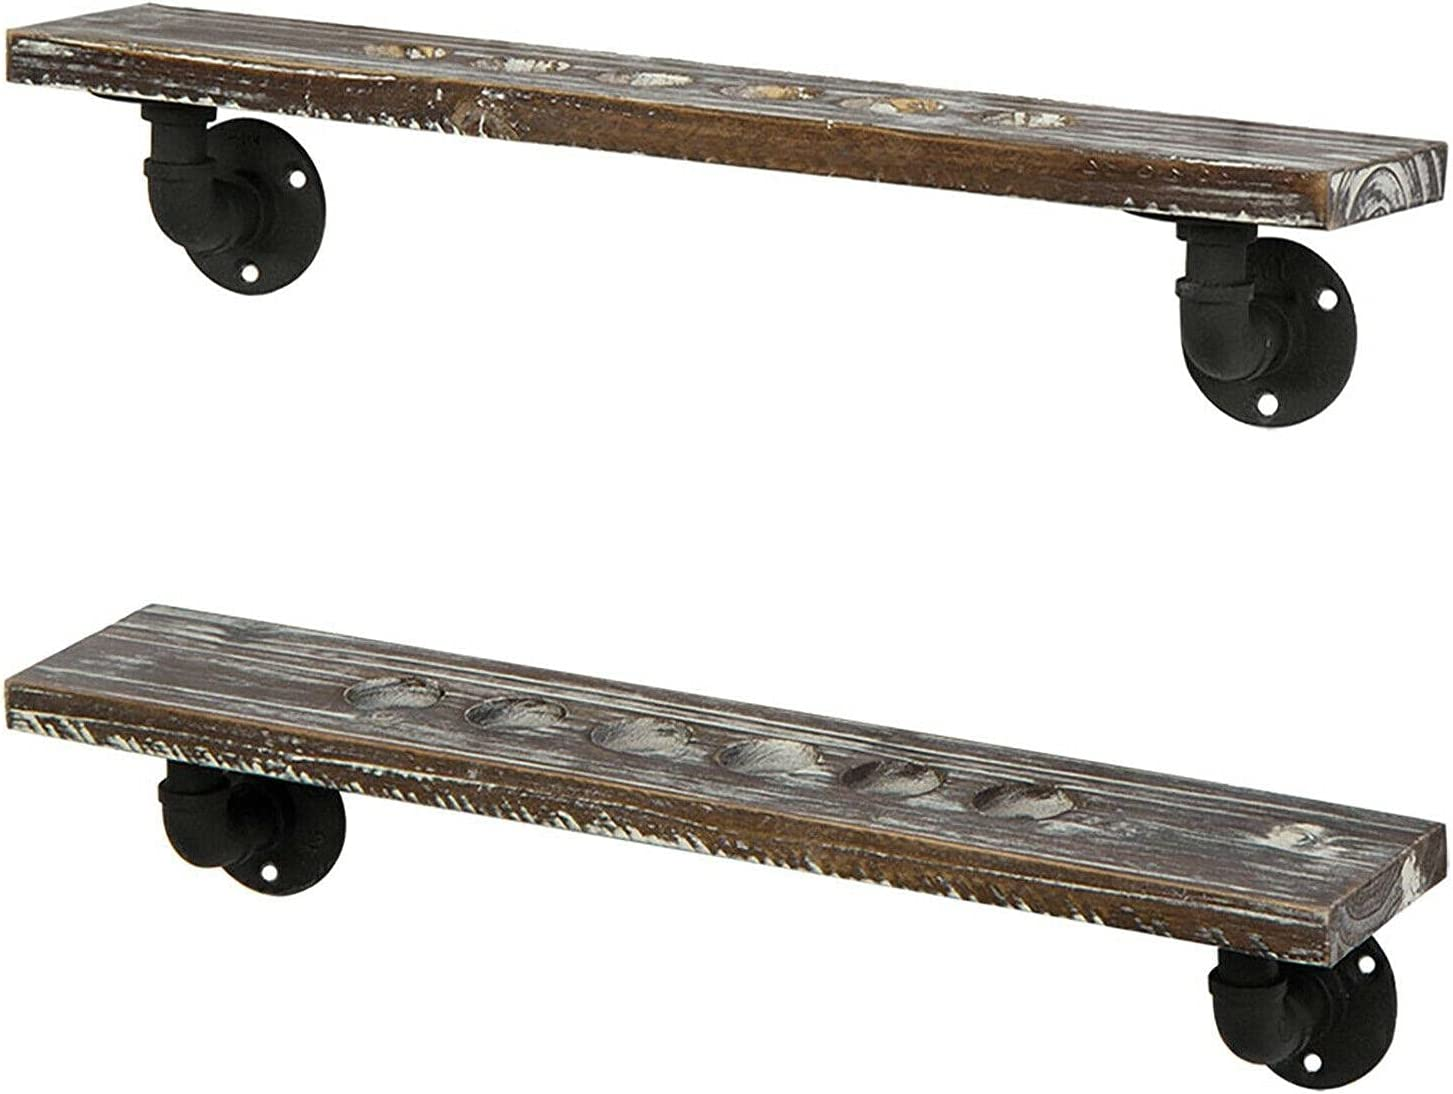 Cheap sale 6 Pool Cue Wood and Max 84% OFF Industrial Po Pipe Metal Rack Wall Billiards